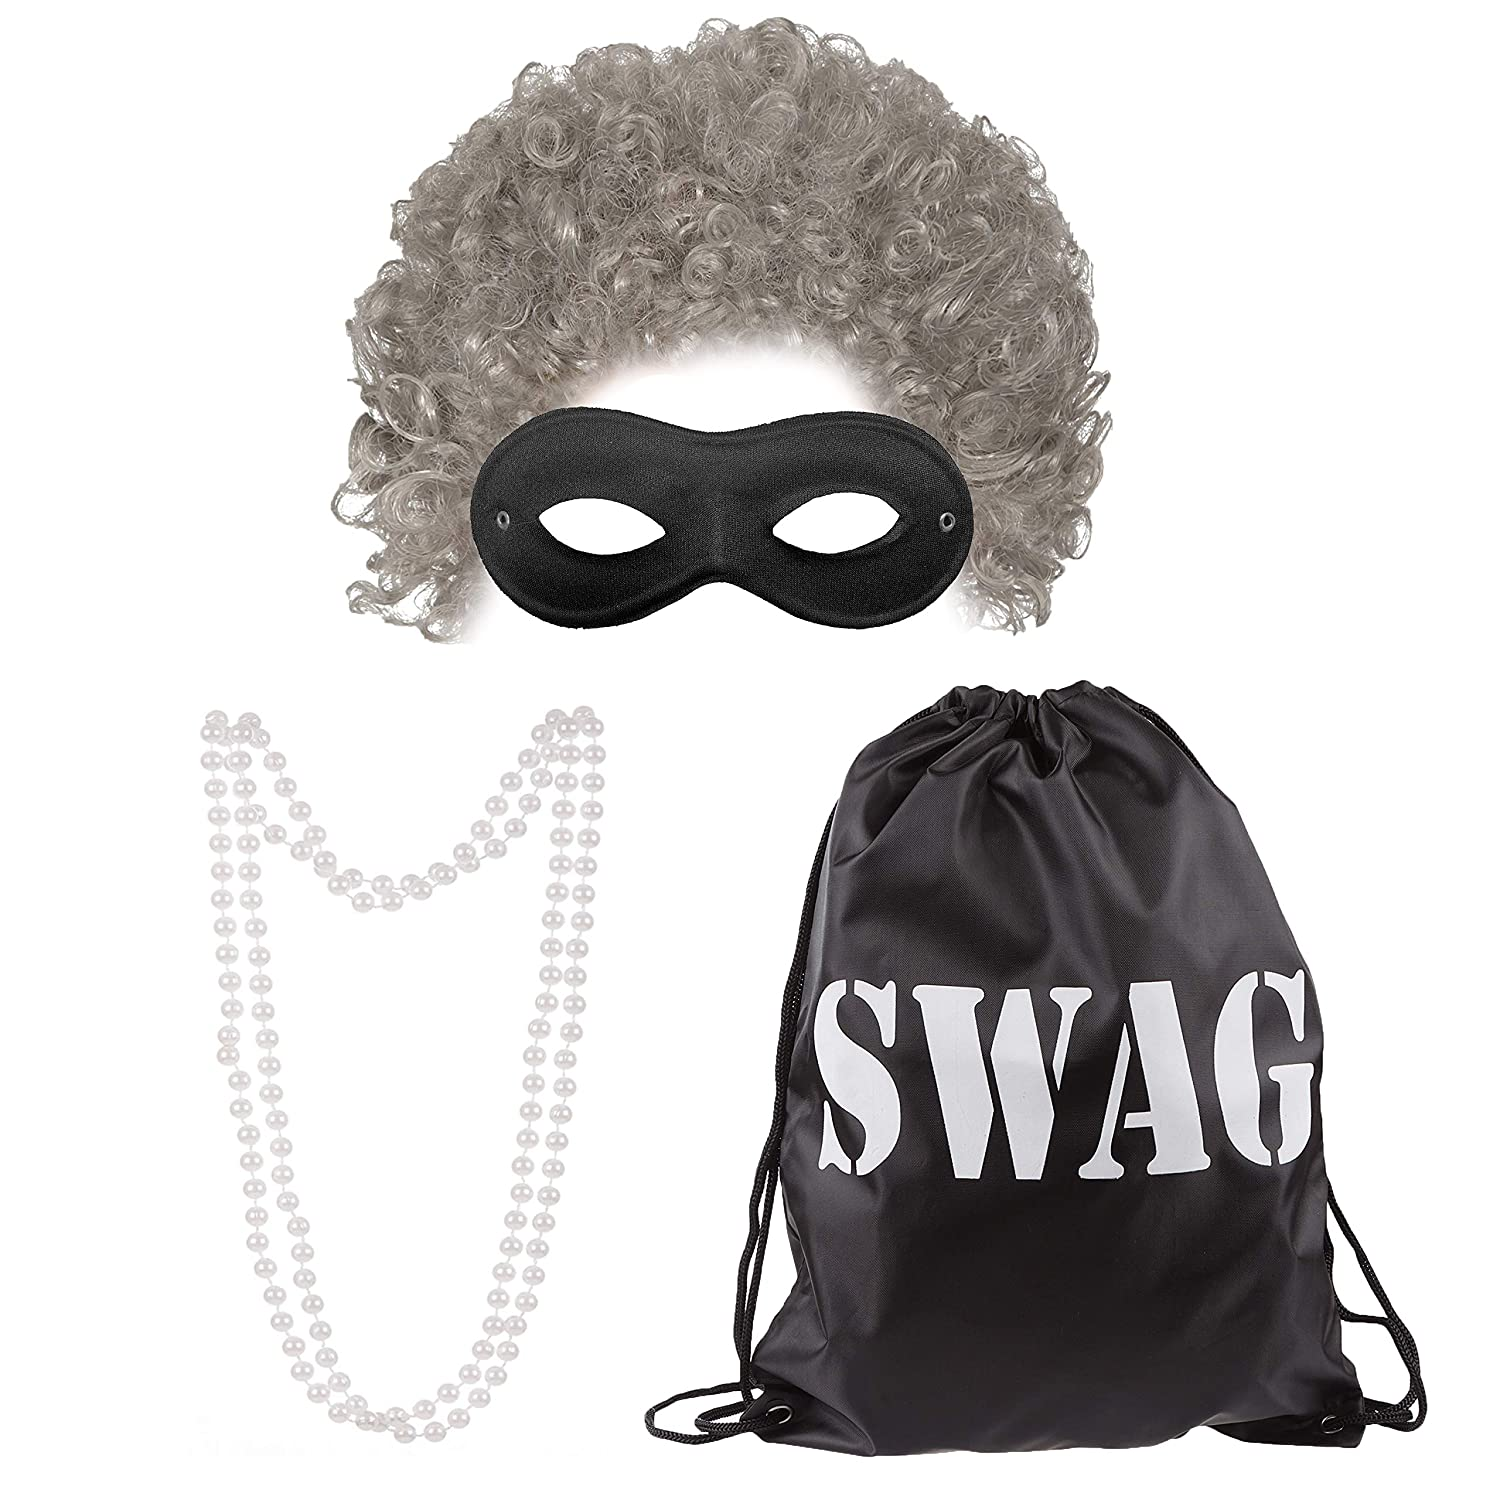 AFRO /& EYE MASK Gangster Granny Grey Old Lady Wig World Book Day Fancy Dresses